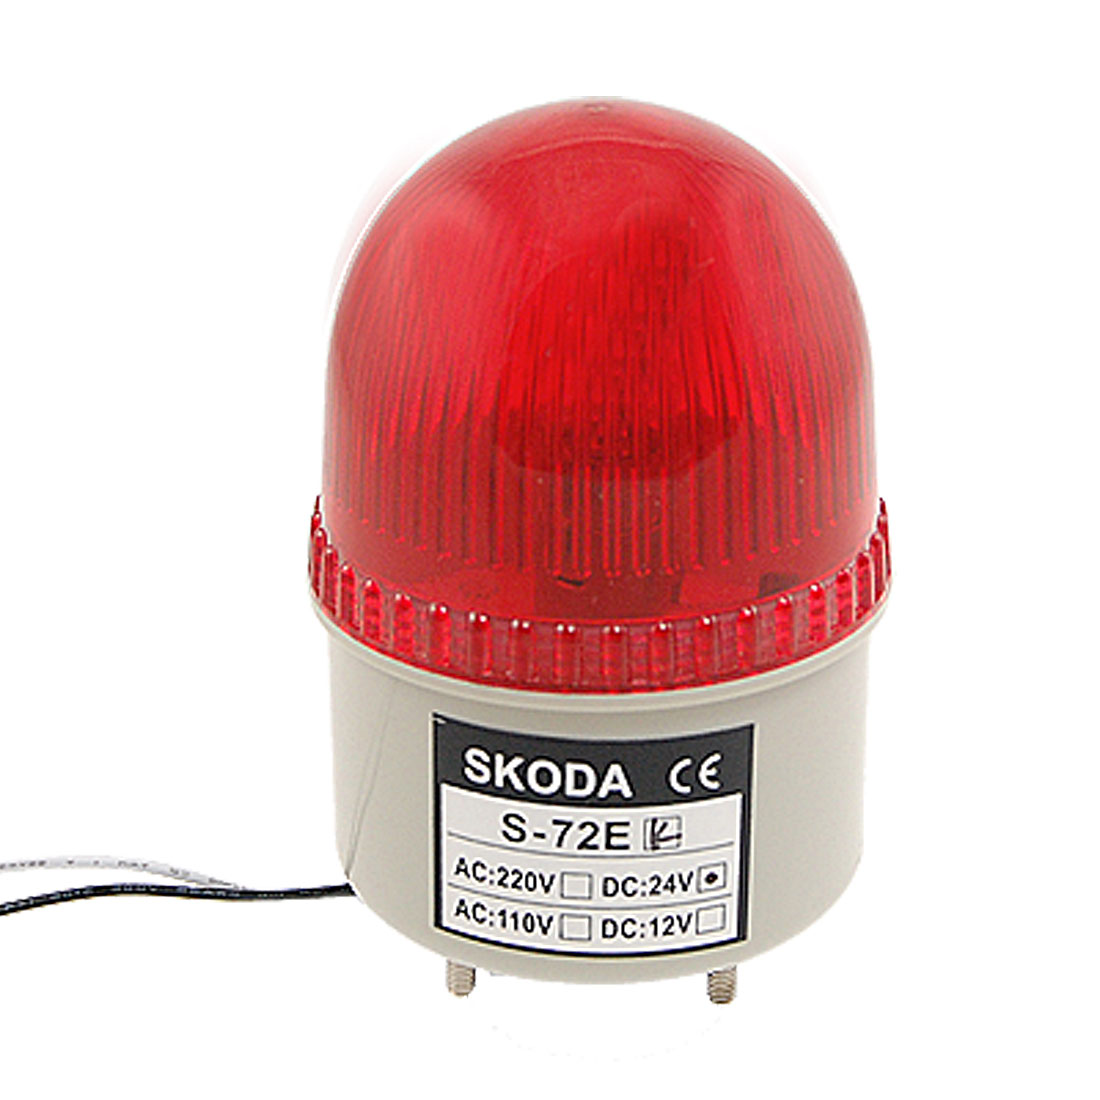 DC 24V Red Alarm Buzzer Industrial Safety Tower Signal Light 90dB